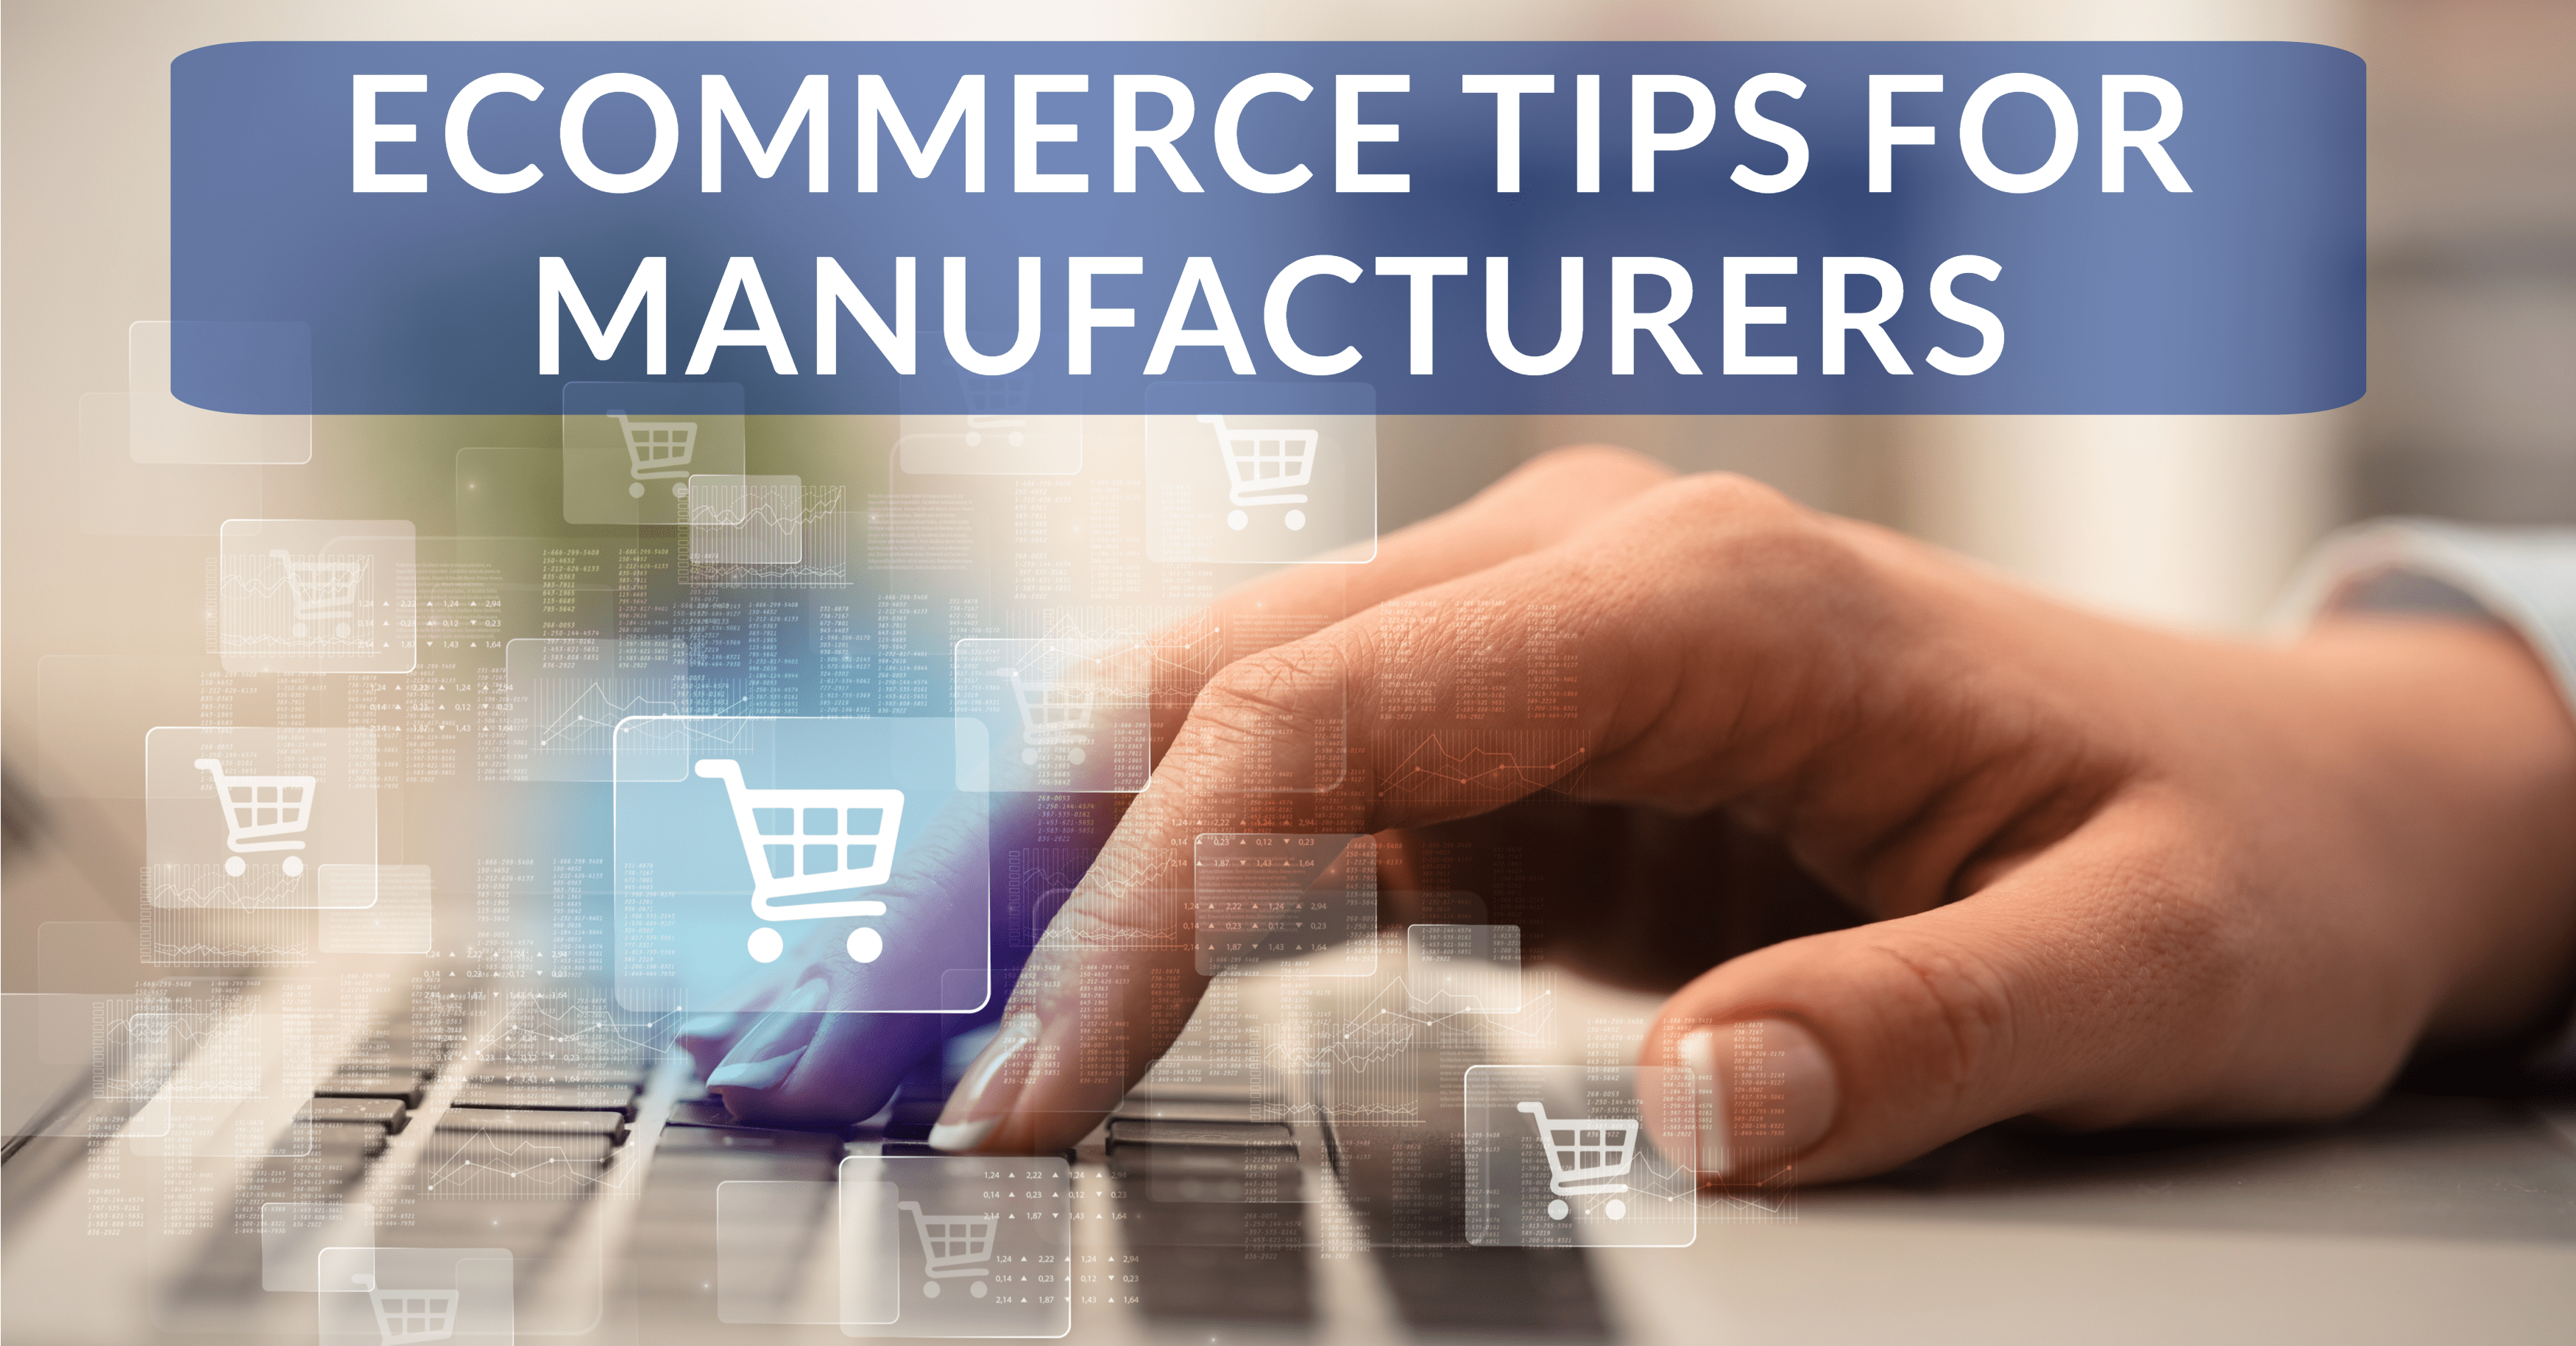 Stop Missing Out: 5 eCommerce Tips for Manufacturers